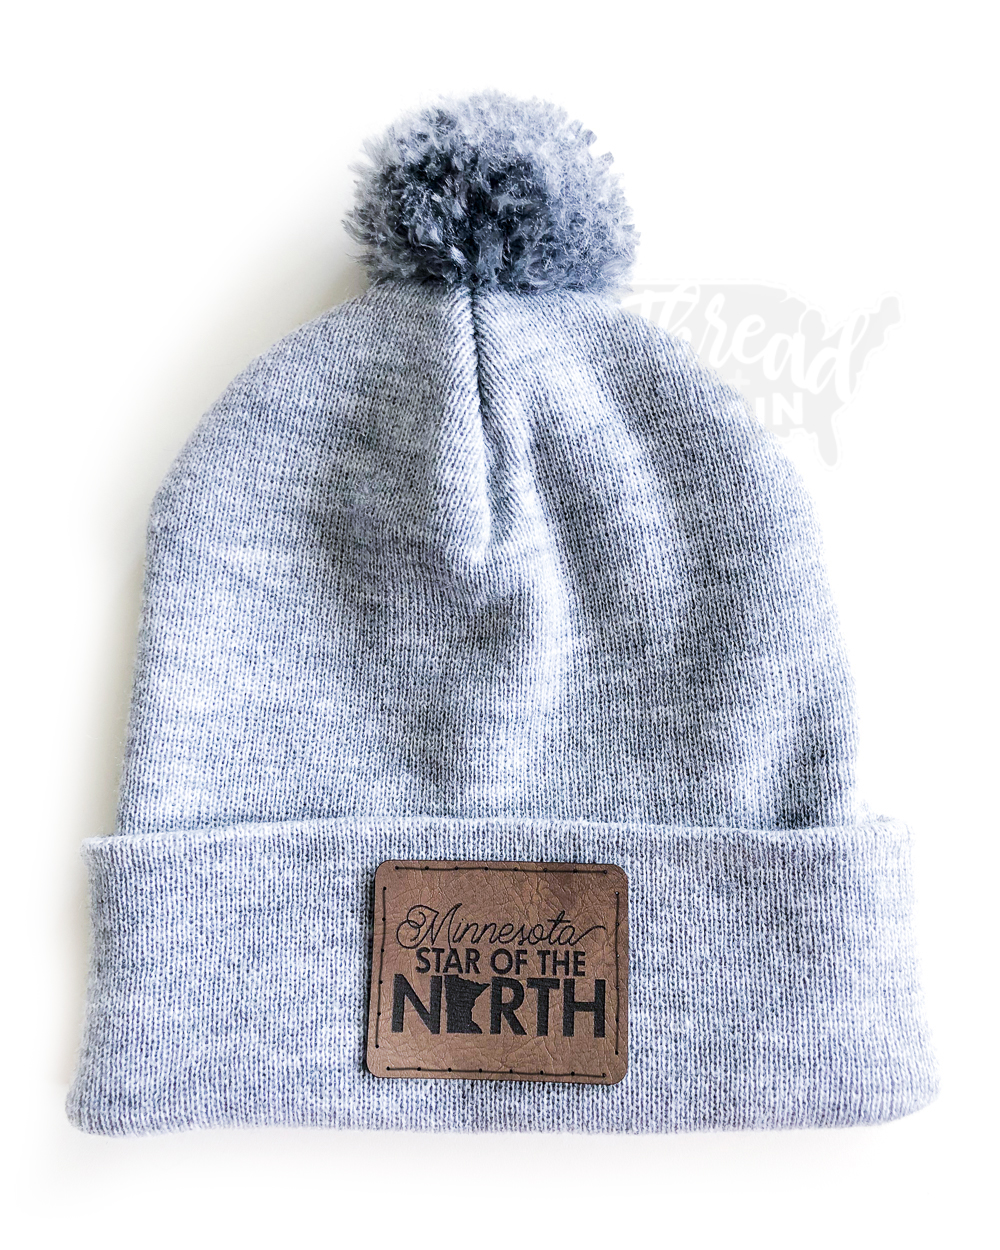 Minnesota :: Star of the North PATCHED HAT